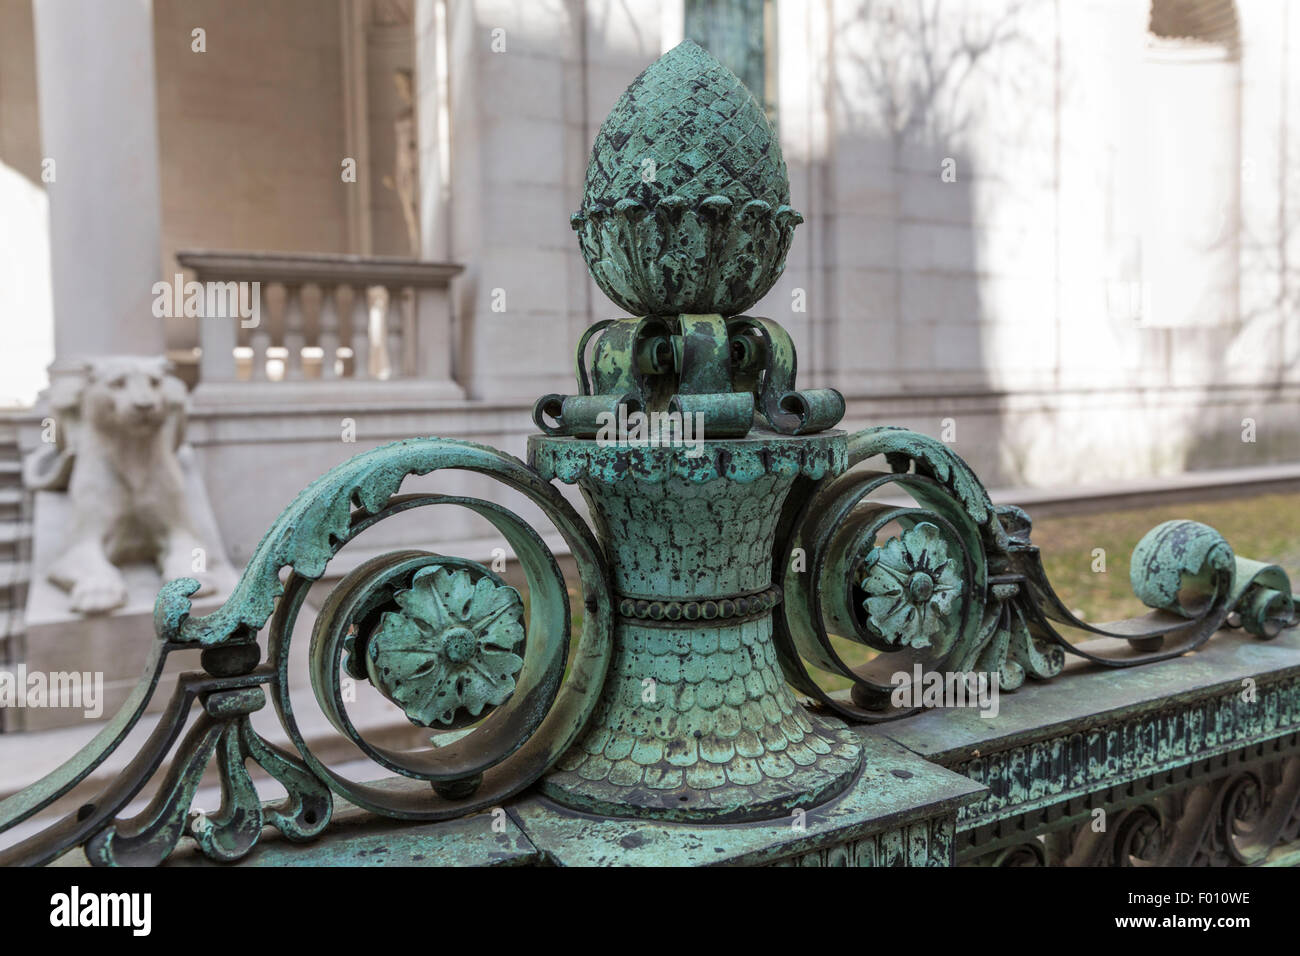 Patinated bronze artichoke and leaf scroll atop a fence at the Frick Collection in New York - Stock Image